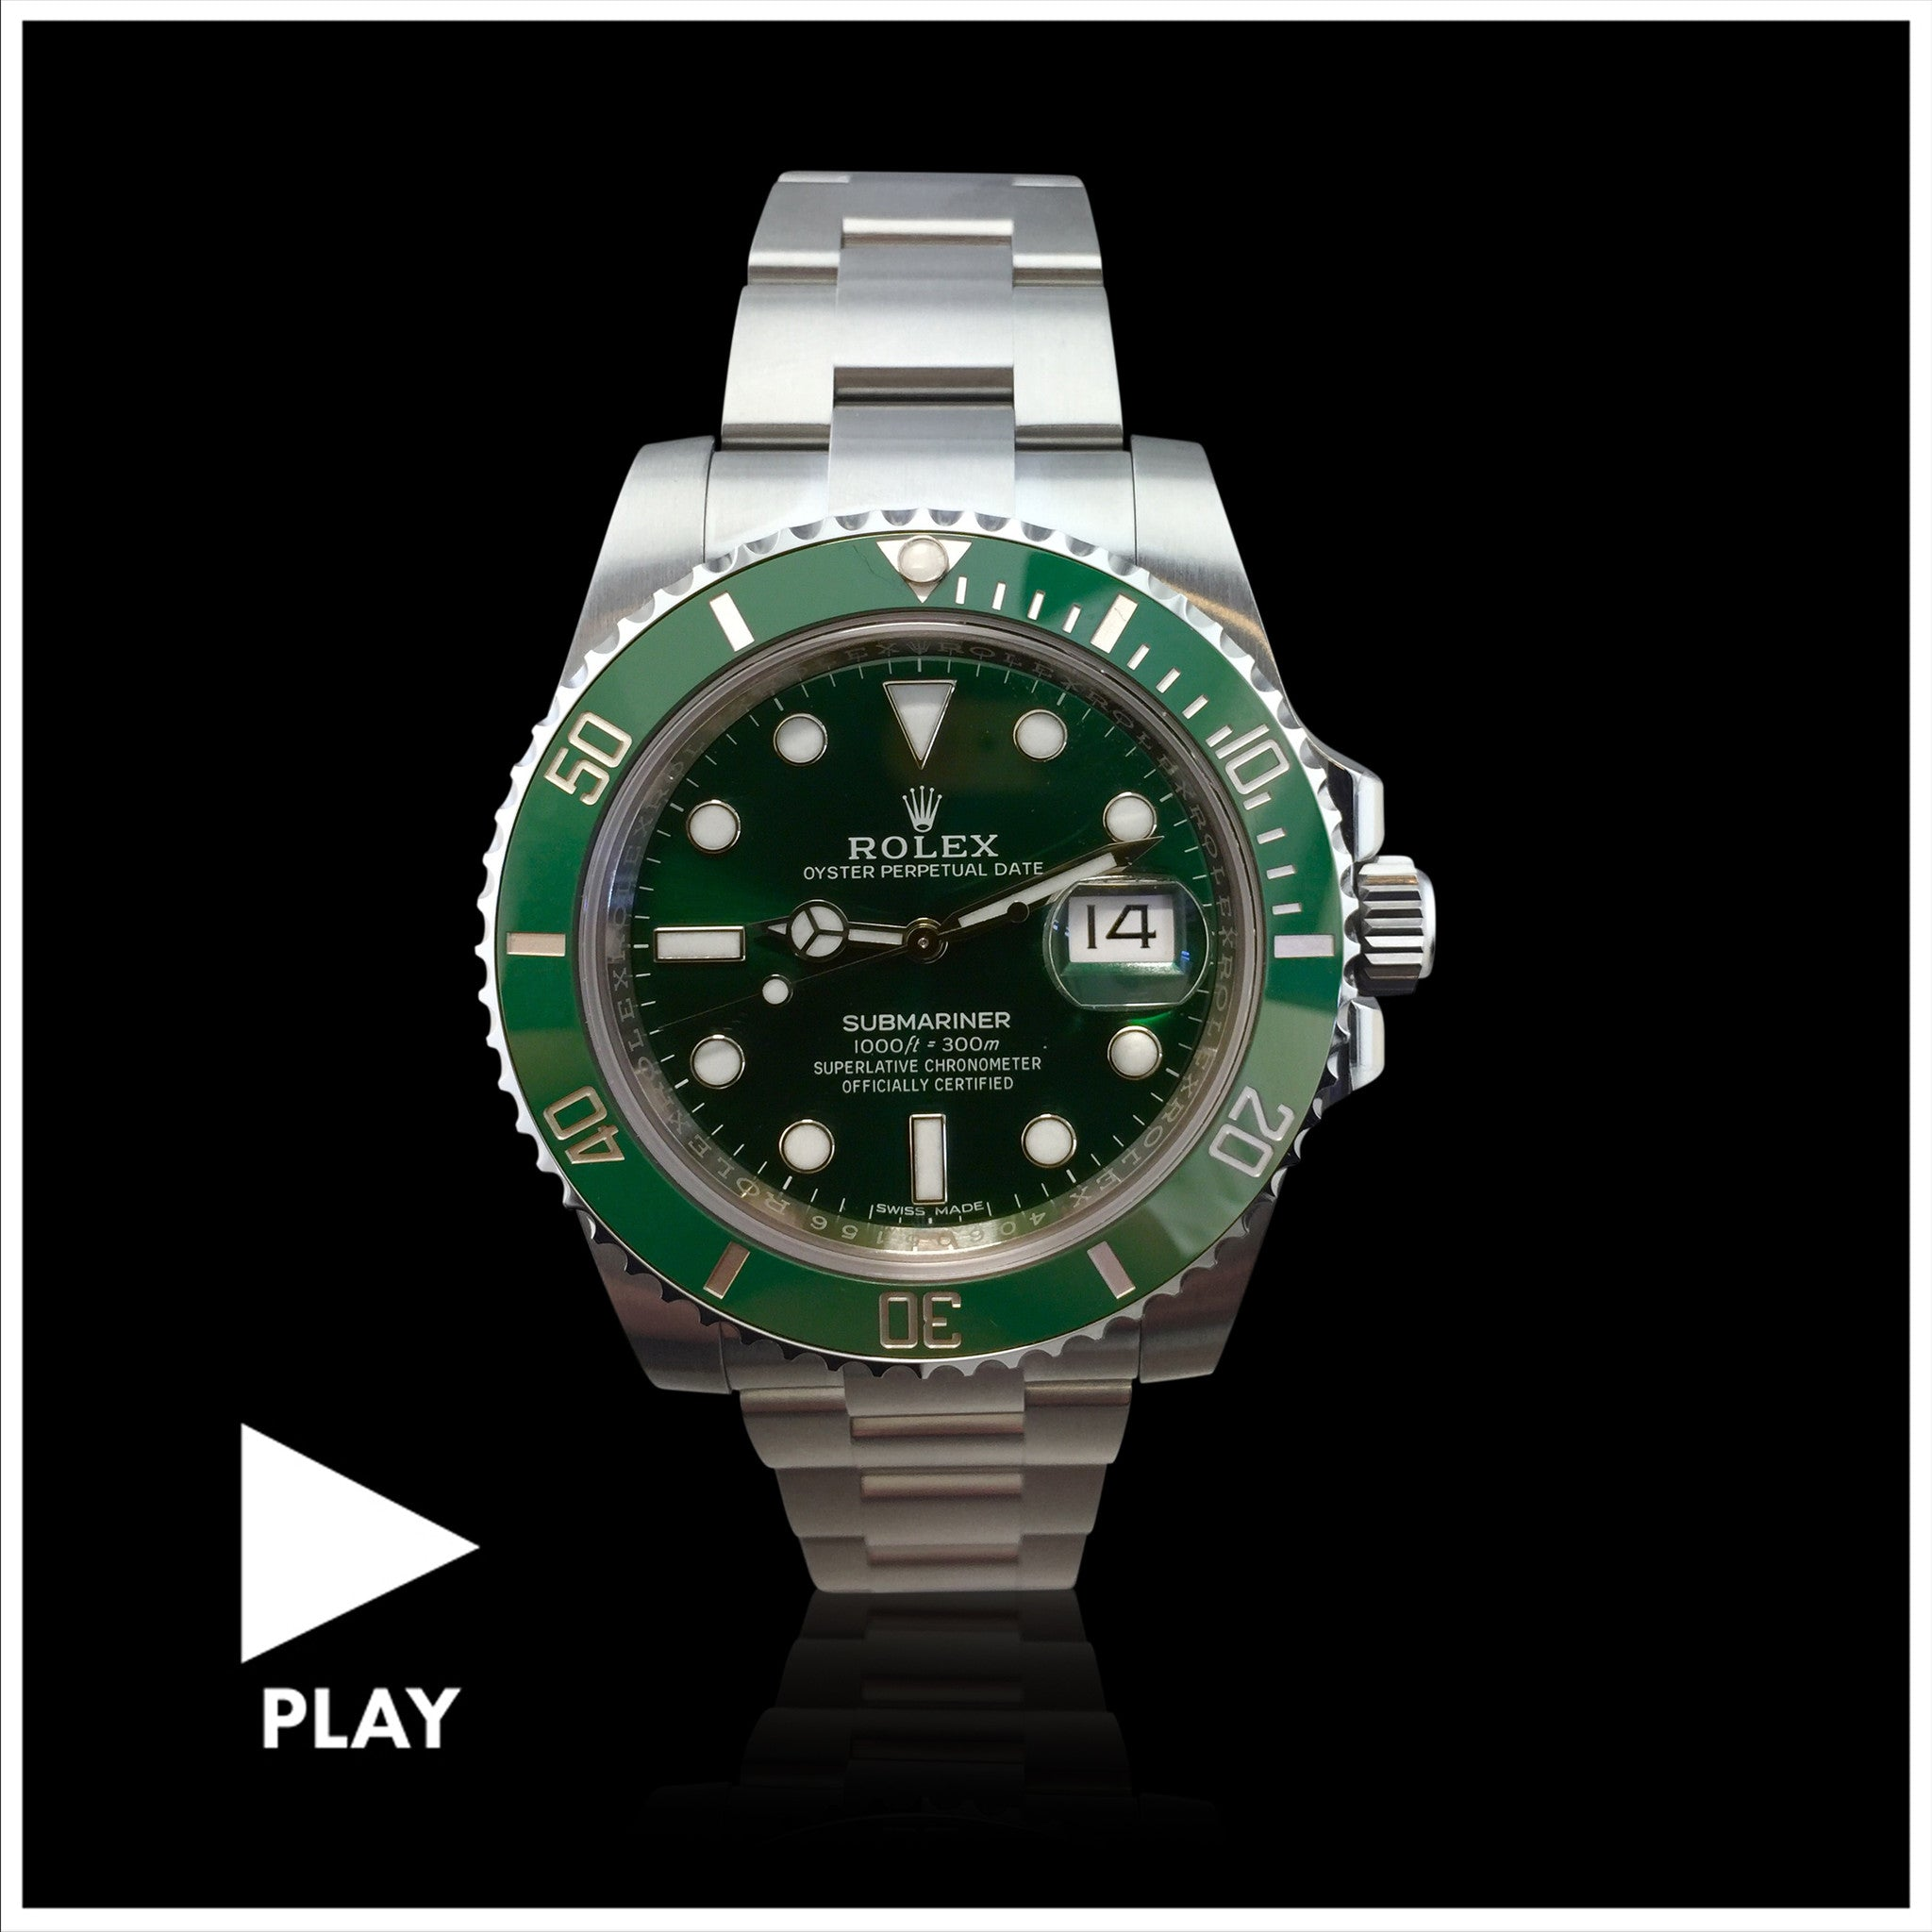 Rolex Submariner Date Green Hulk Stainless Steel Wristwatch